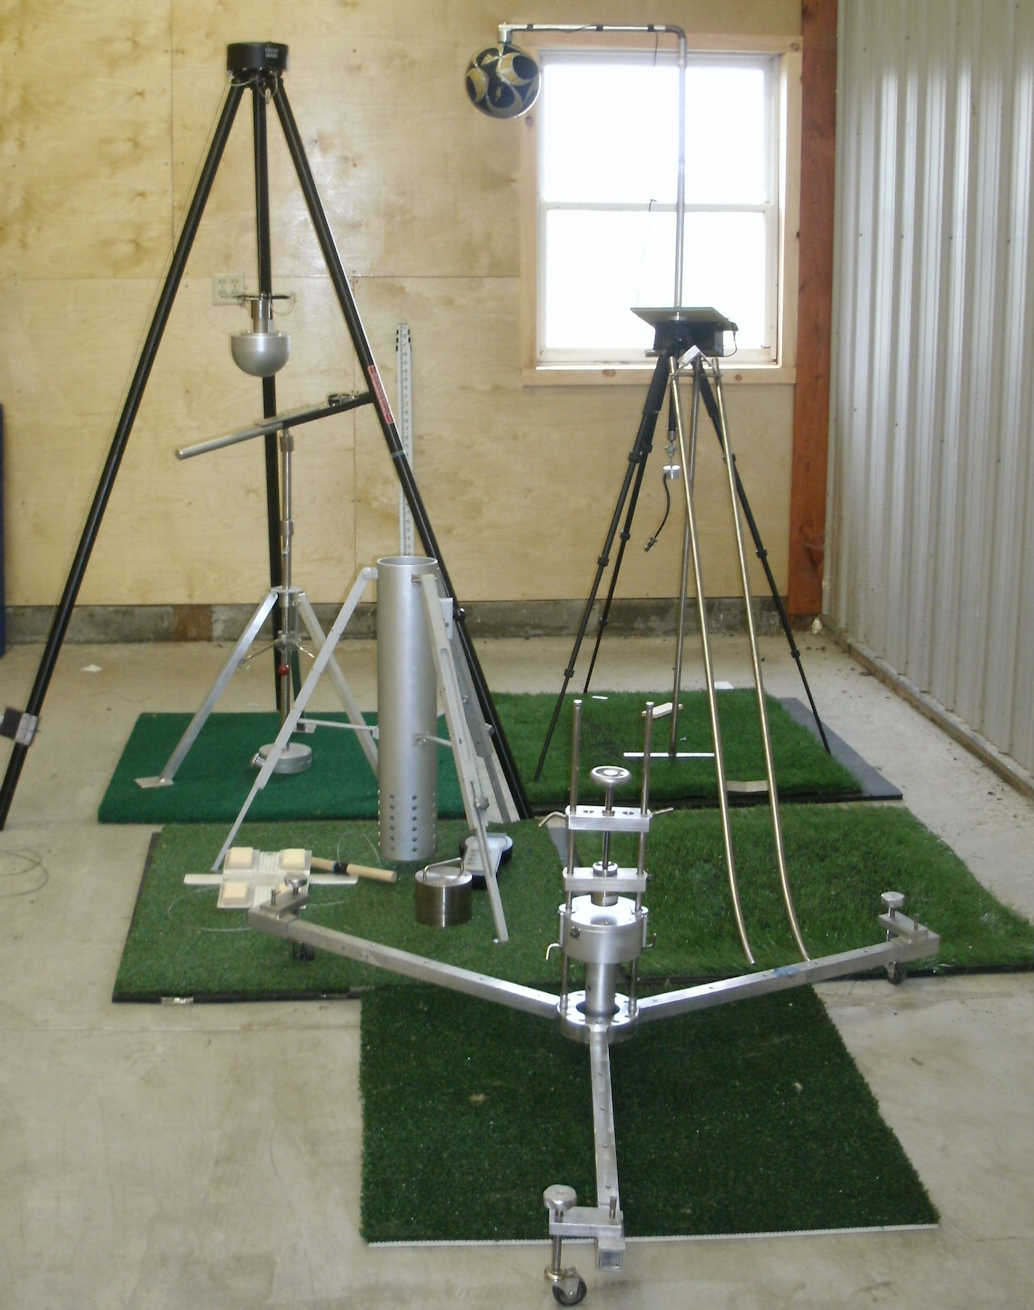 synthetic turf testing equipment